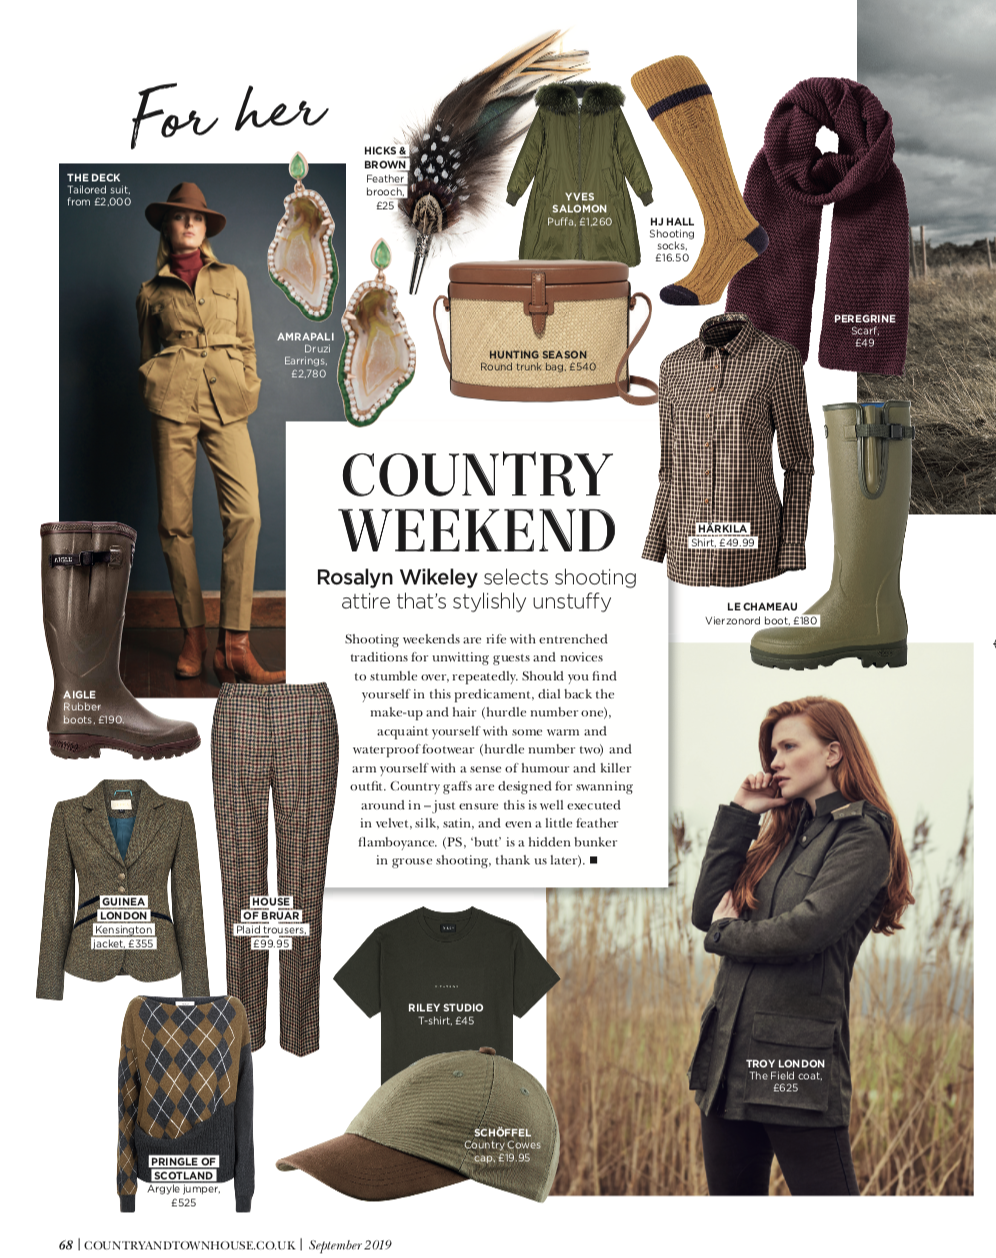 Country & Townhouse: Country Weekend - Rosalyn Wikeley selects shooting attire that's stylishly unstuffy…